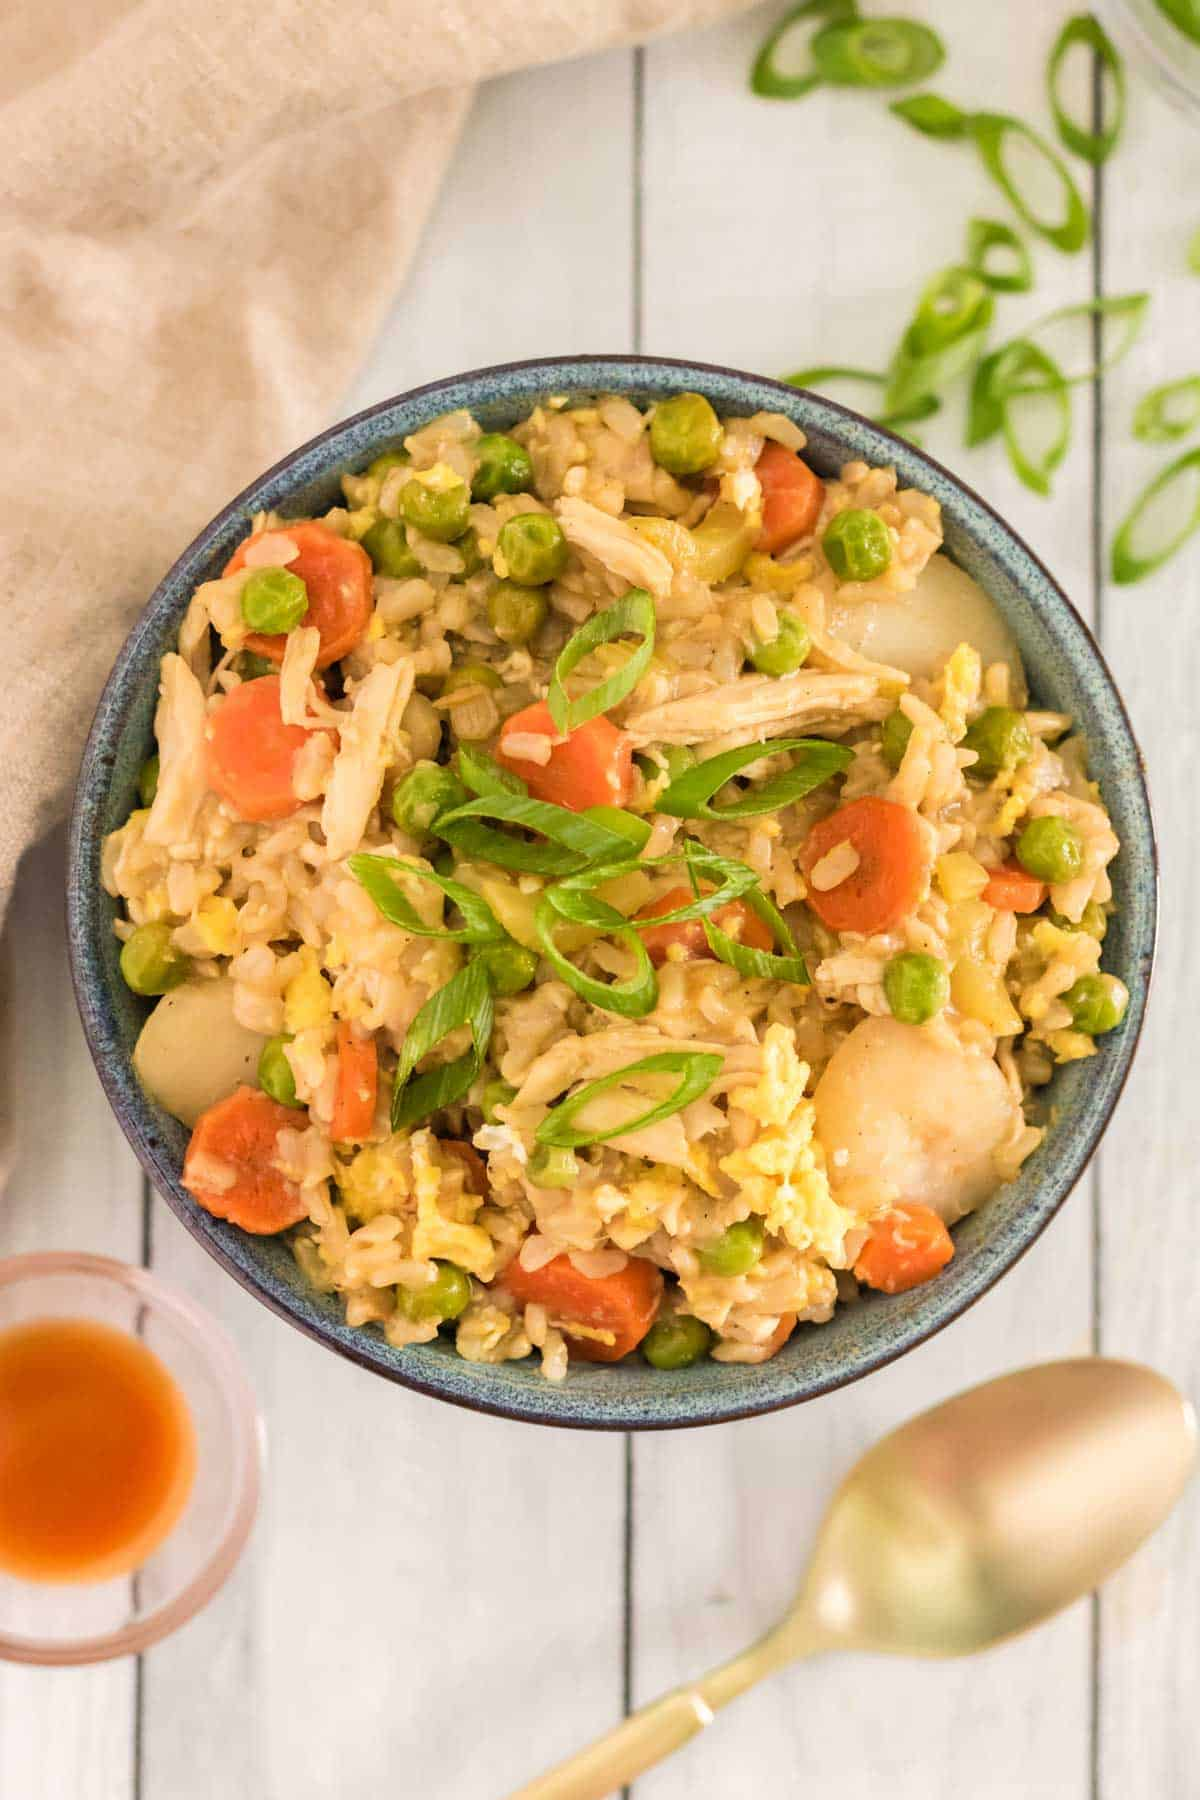 bowl of chicken fried rice with carrots, brown rice and shredded chicken